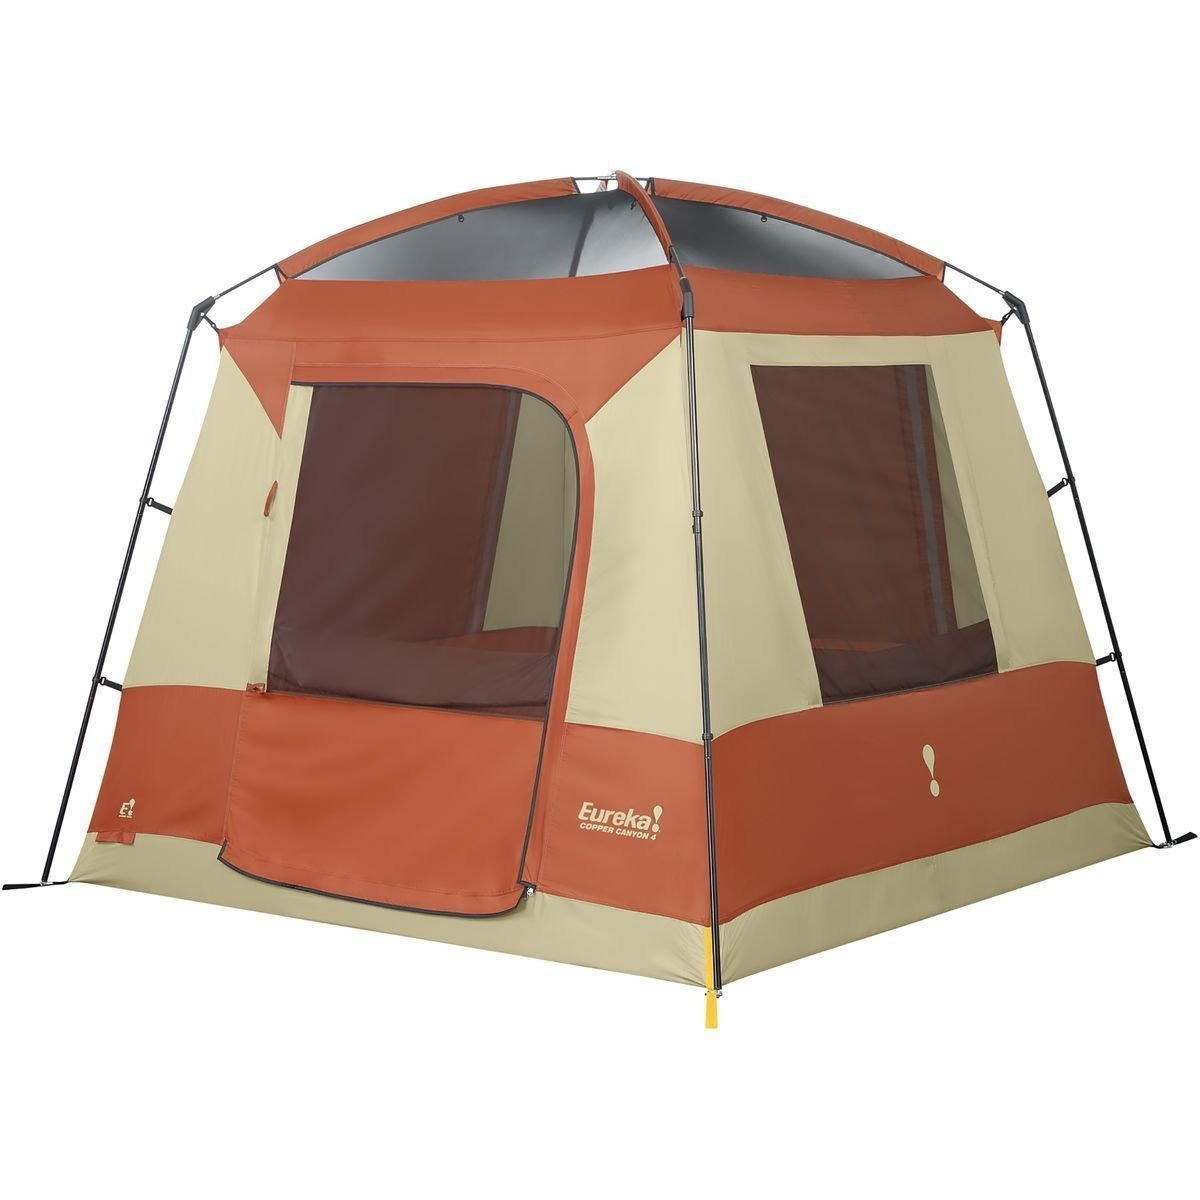 Top 10 Best Waterproof Tent For Camping 2020 Reviews 1